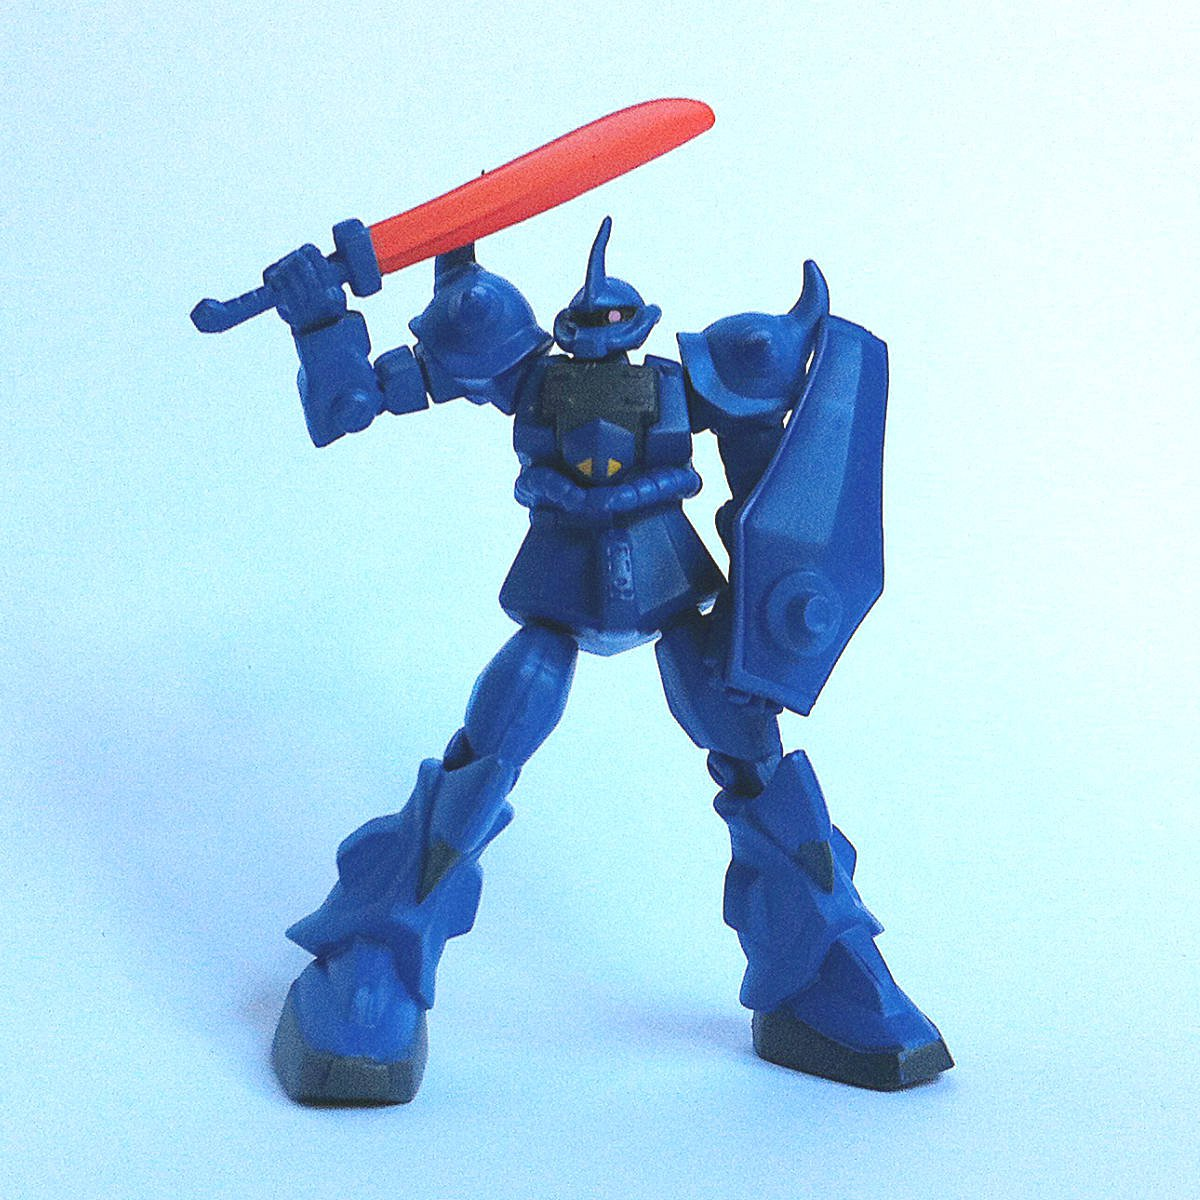 MS-07B Gouf from HG Gundam MS Selection 17 by Bandai